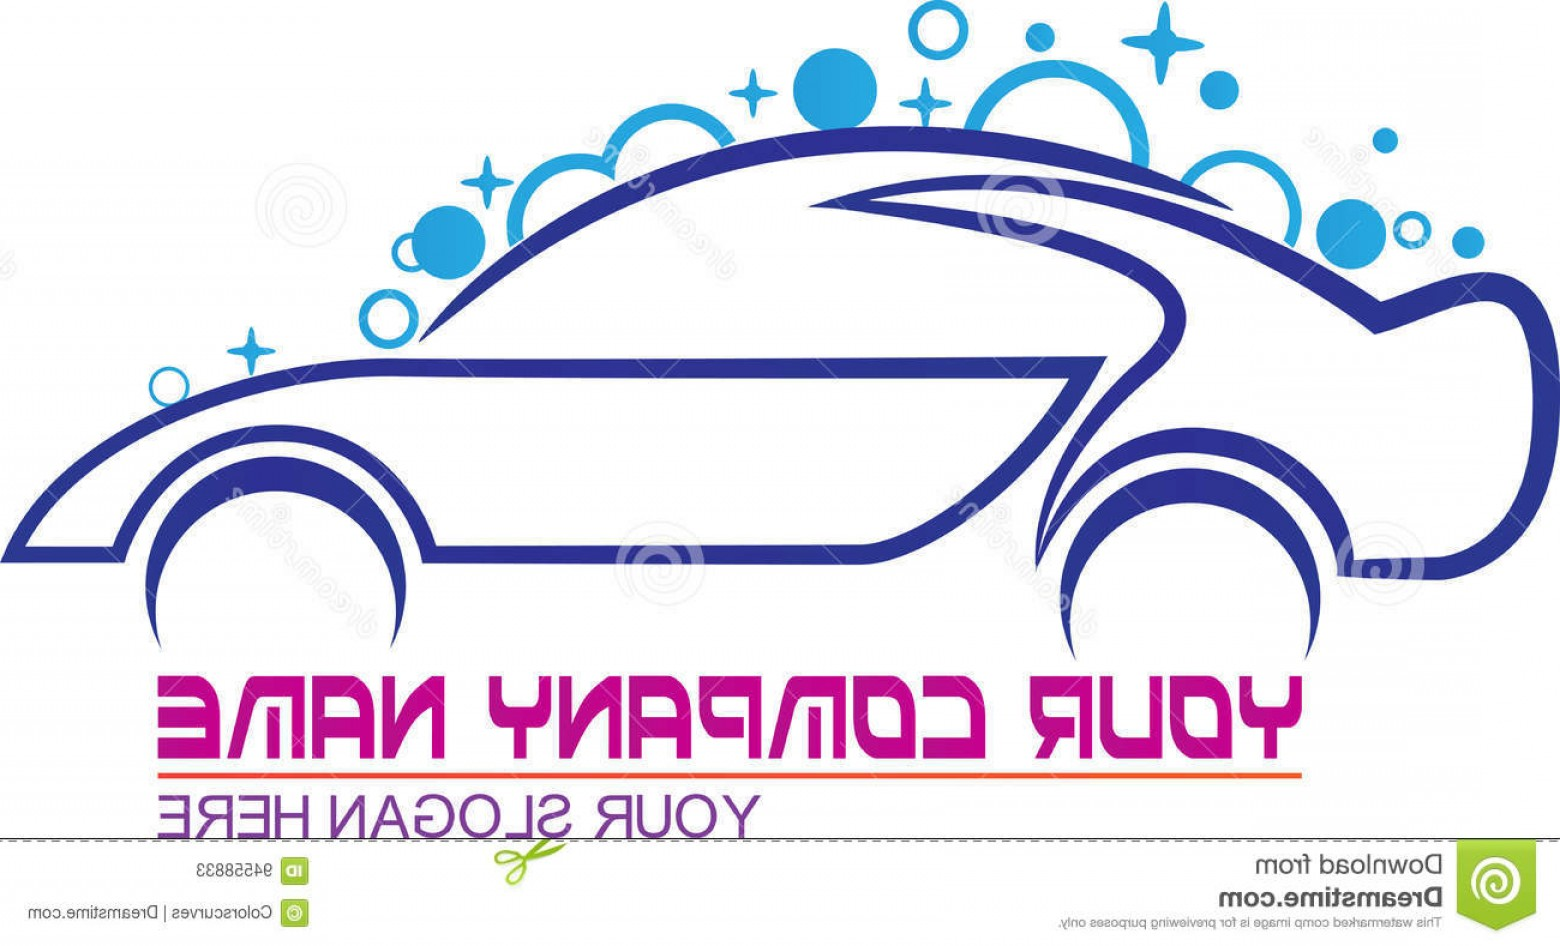 Car Wash Vector Graphics: Stock Illustration Car Wash Logo Vector Drawing Represents Design Image